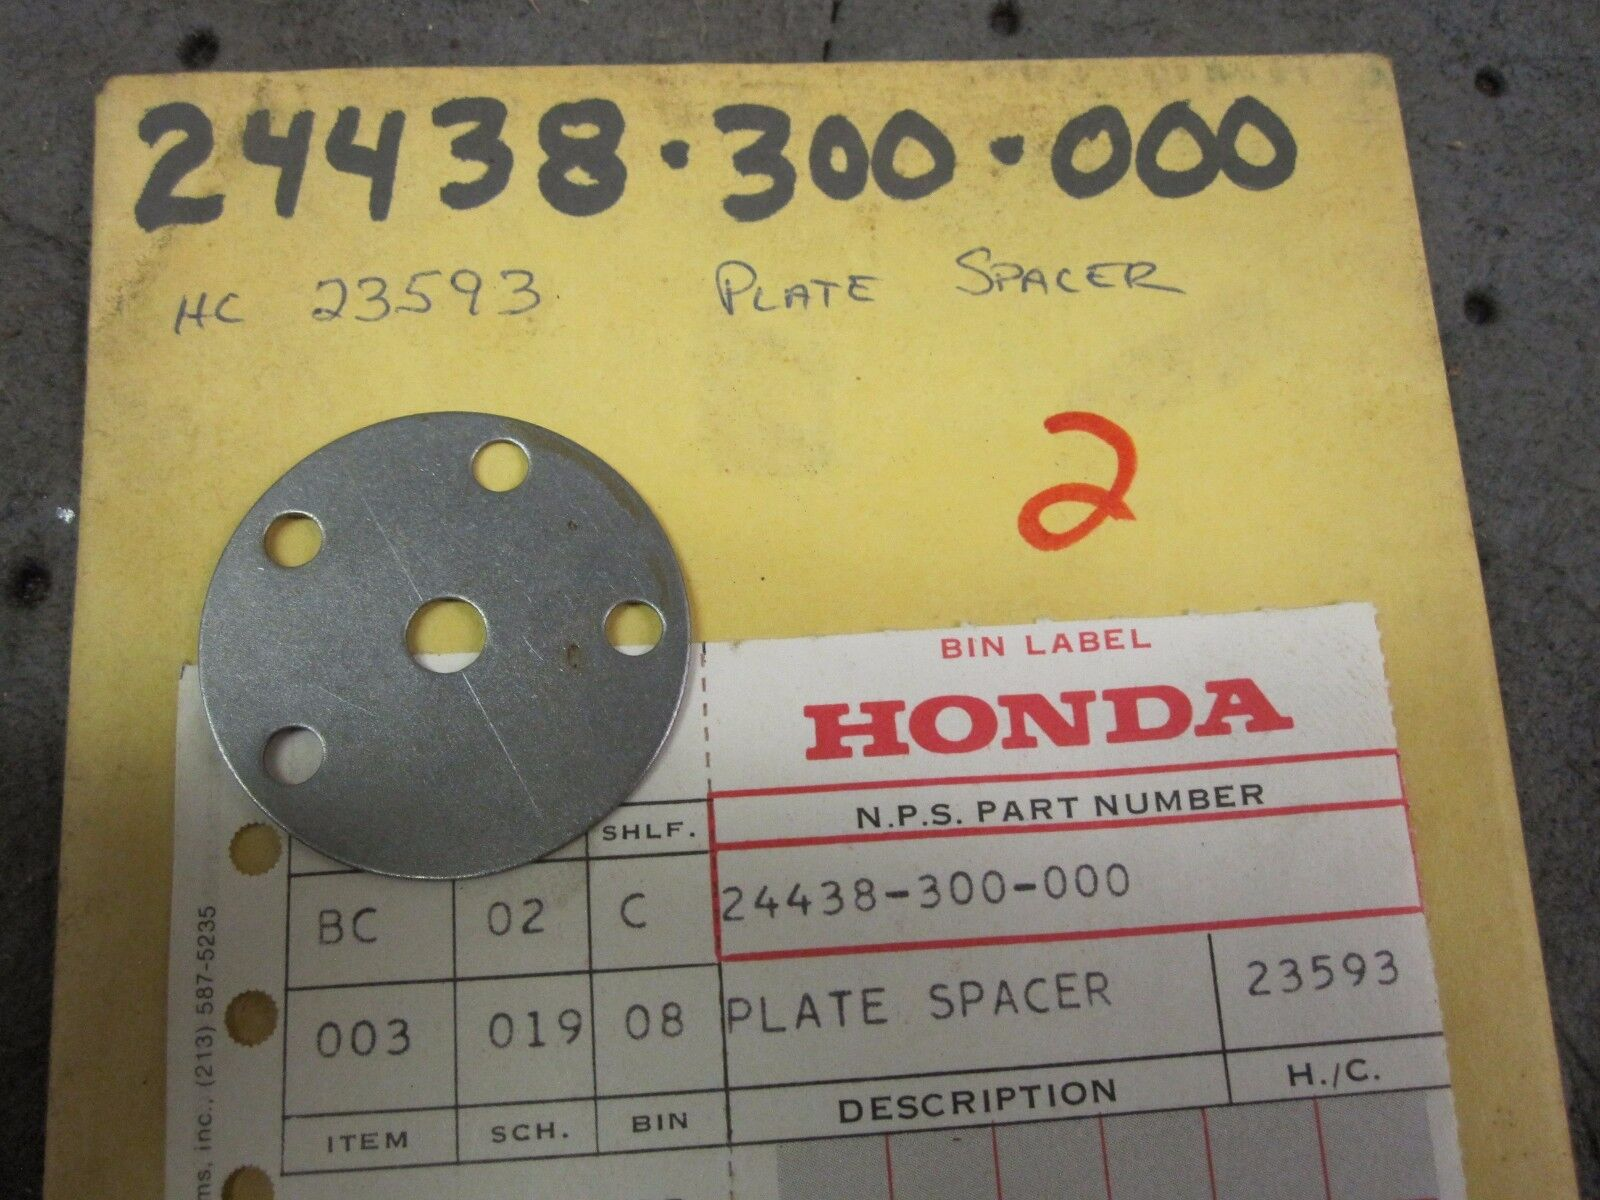 NOS Honda 69-76 CB 750  Gear Shift Drum Spacer Plate 24438-300-000